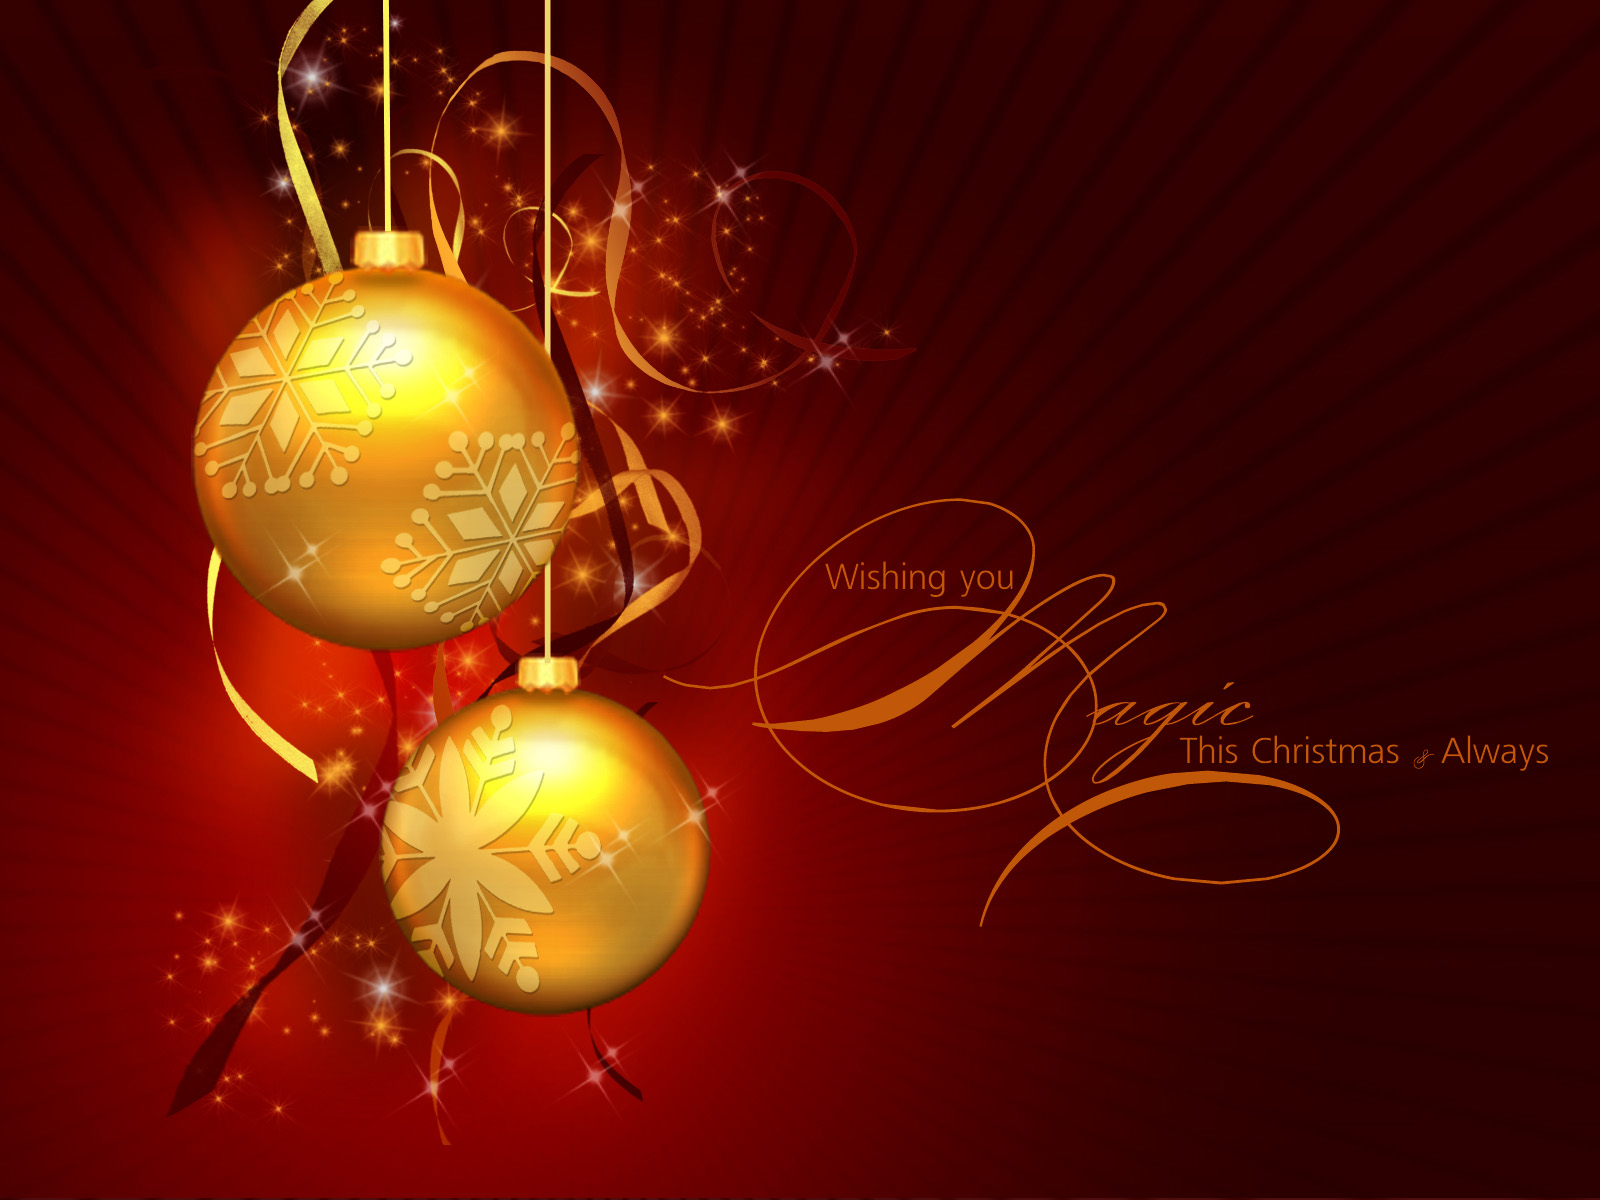 http://4.bp.blogspot.com/-P5ZaJL_9sok/T7lJ6WGeUGI/AAAAAAAACzE/He7YFakjD3Q/s1600/36-Christmas-wallpapers-free-two-golden-christmas-balls-on-red-background-wallpaper.jpg